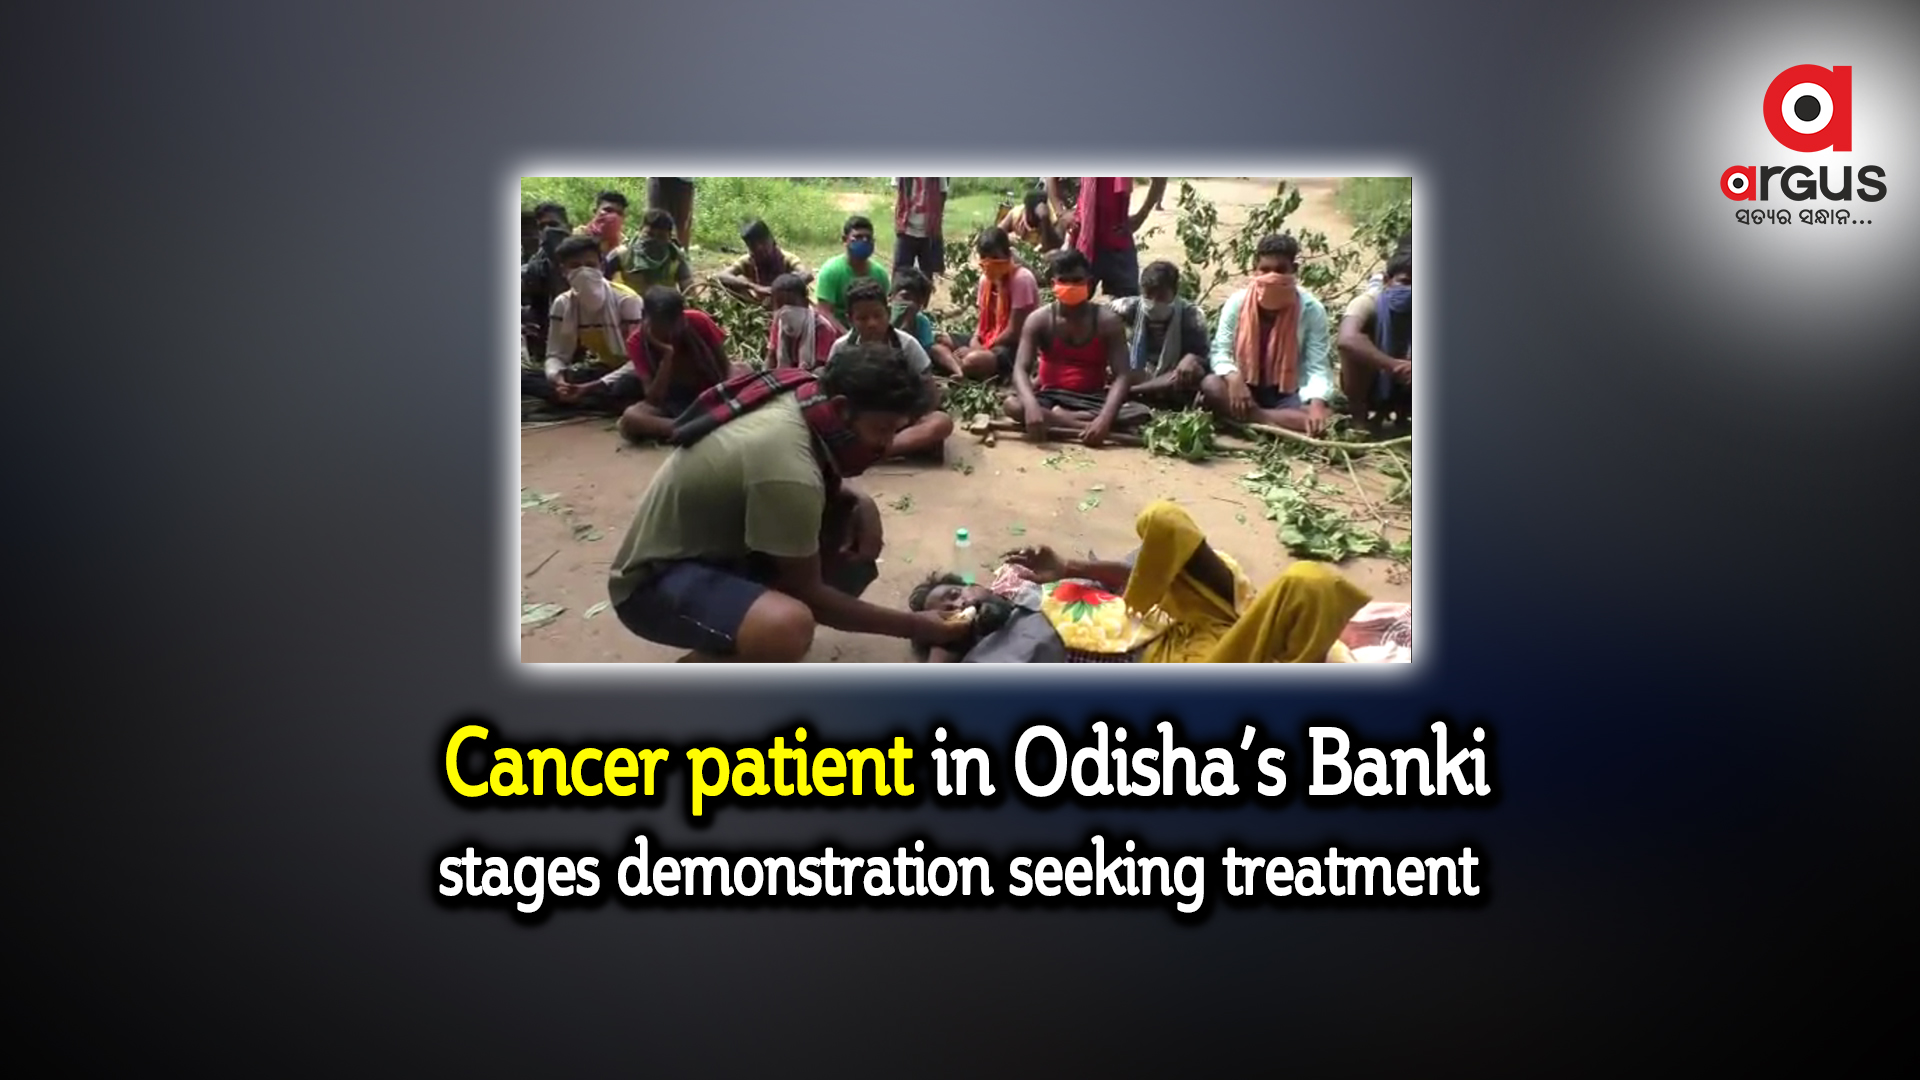 Cancer patient in Odisha's Banki stages demonstration seeking treatment